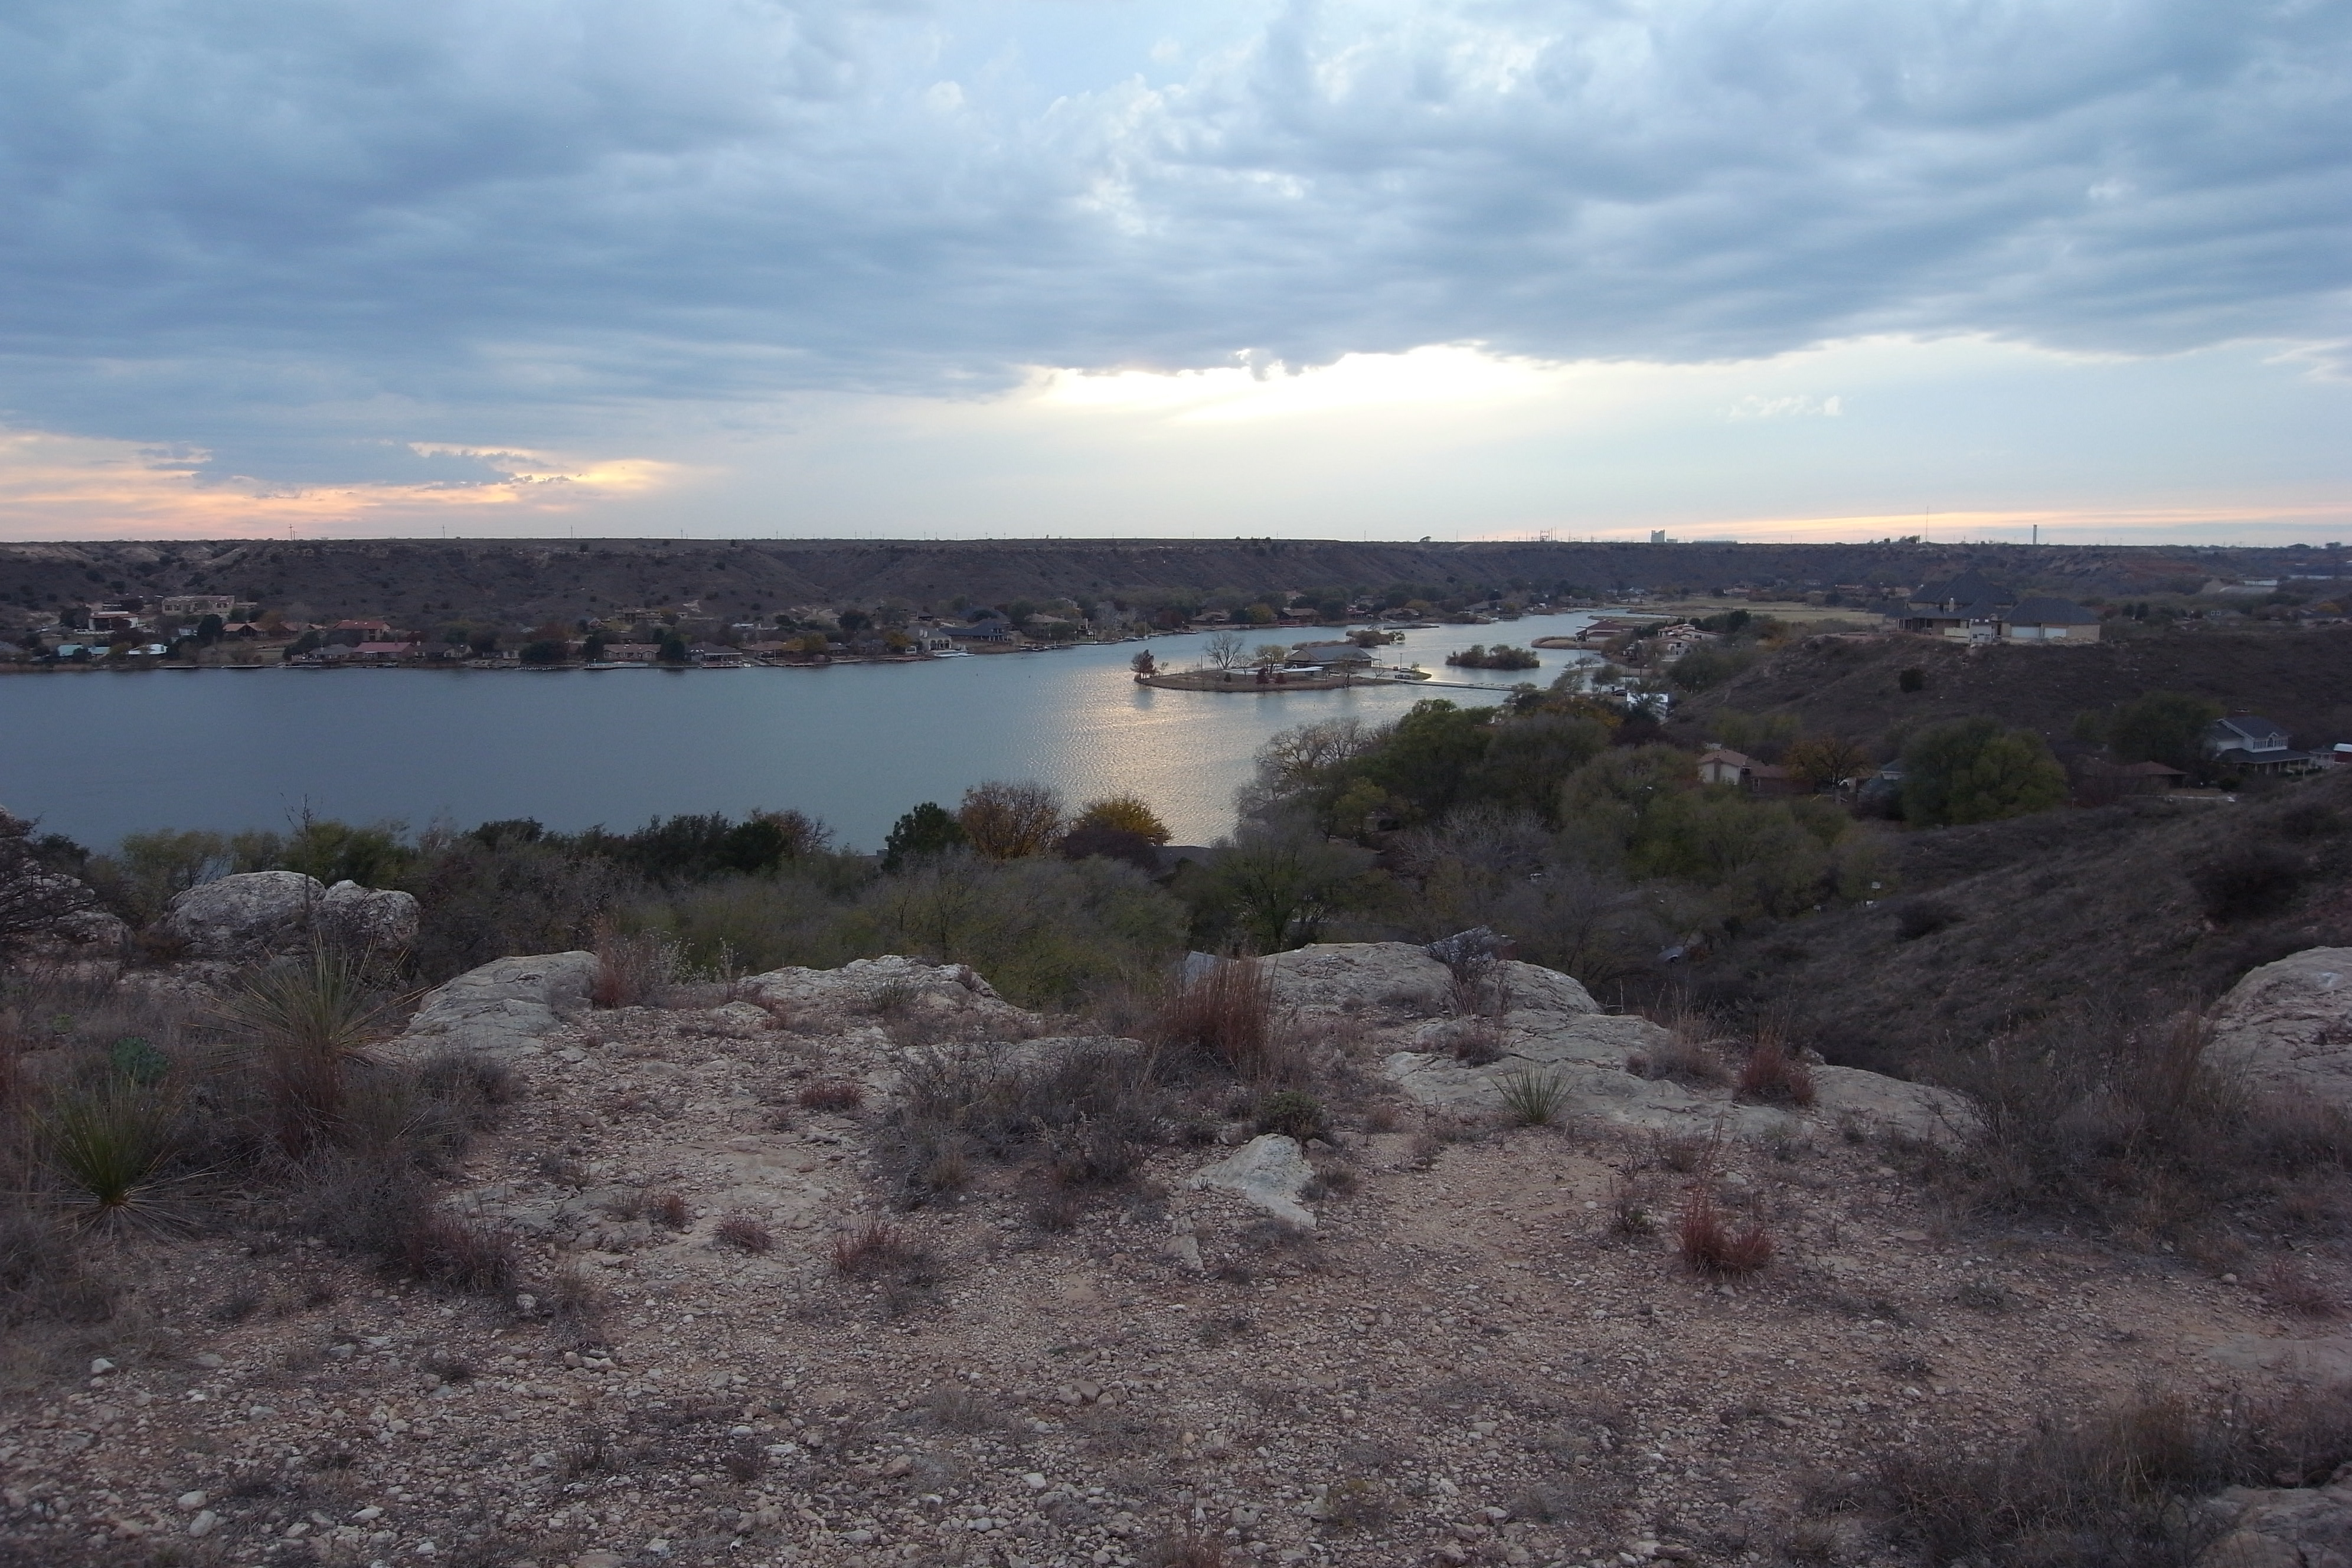 ransom canyon single parents Ransom canyon, tx stats and demographics for the 79366 zip code zip code 79366 is located in northern texas and covers a slightly less than average land area compared to other zip codes in the united states.